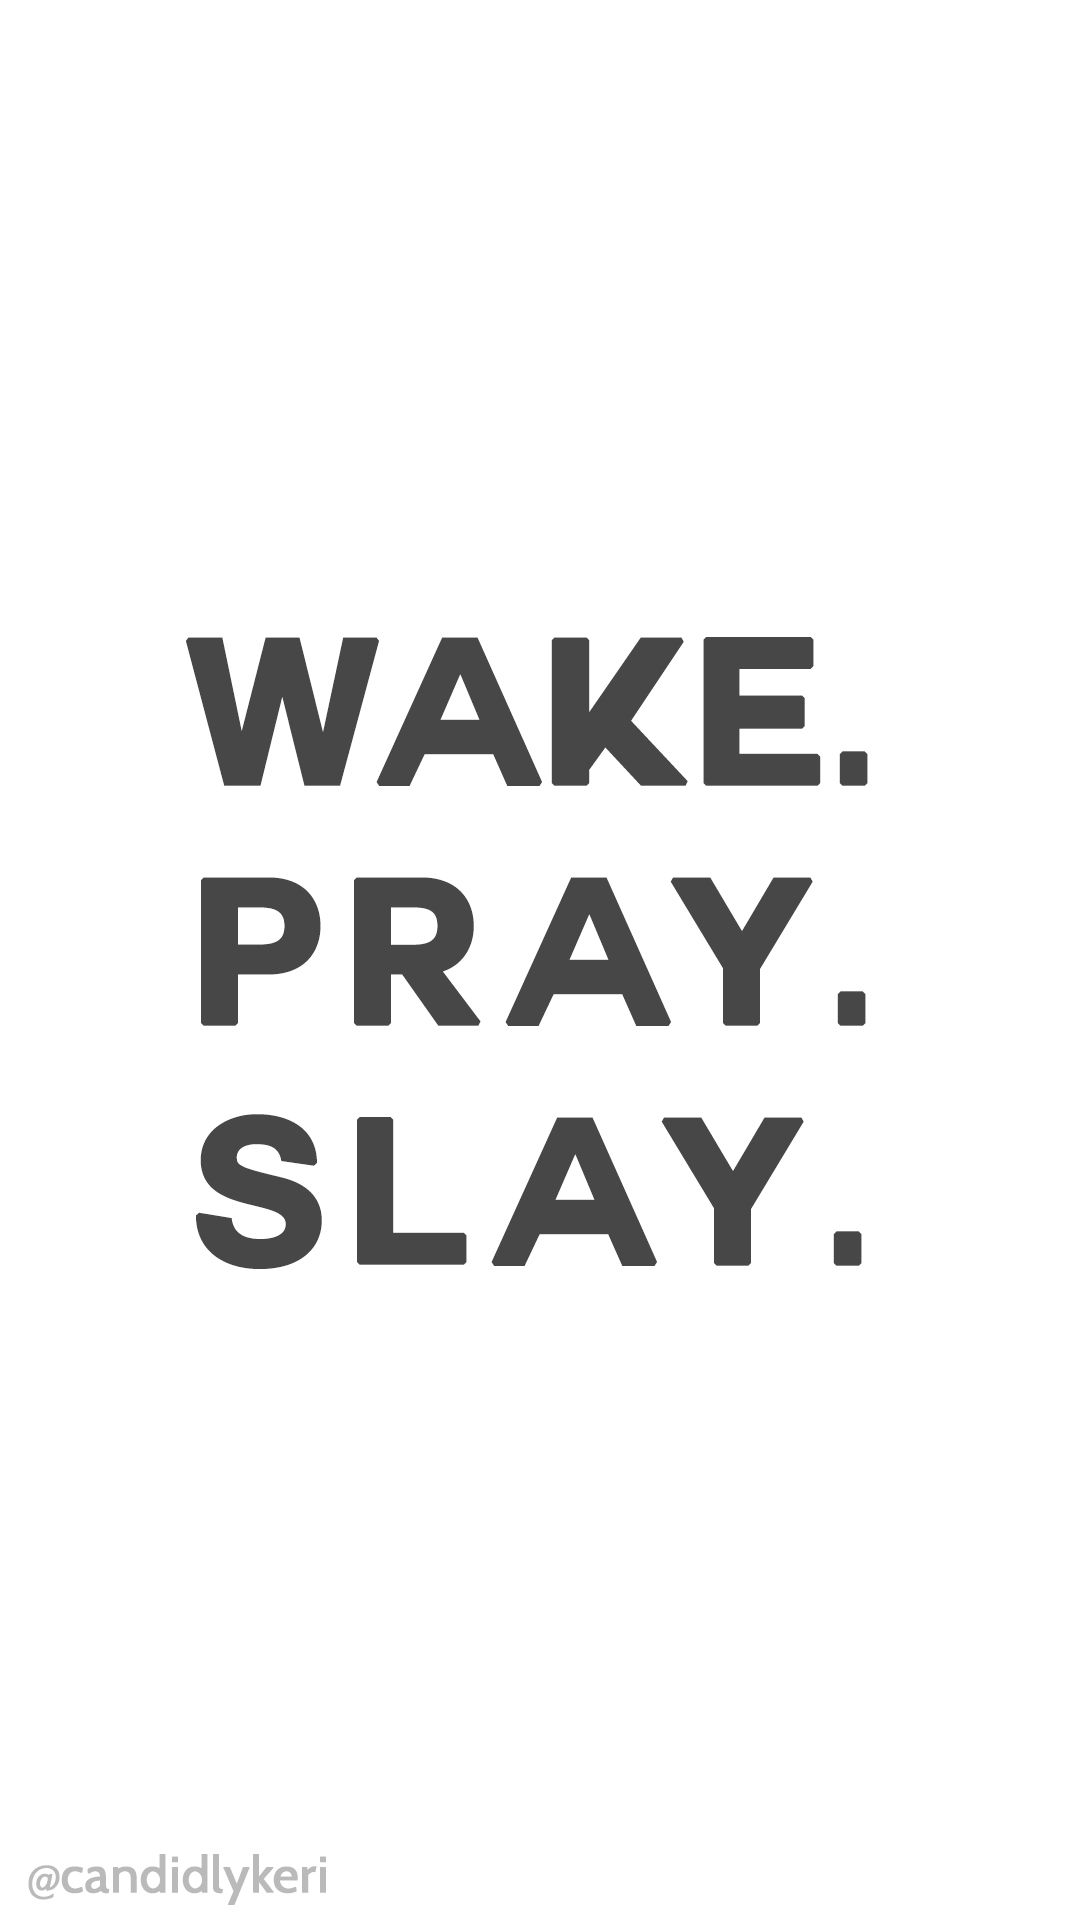 Wake Pray Slay Quote Motivation Background Wallpaper You